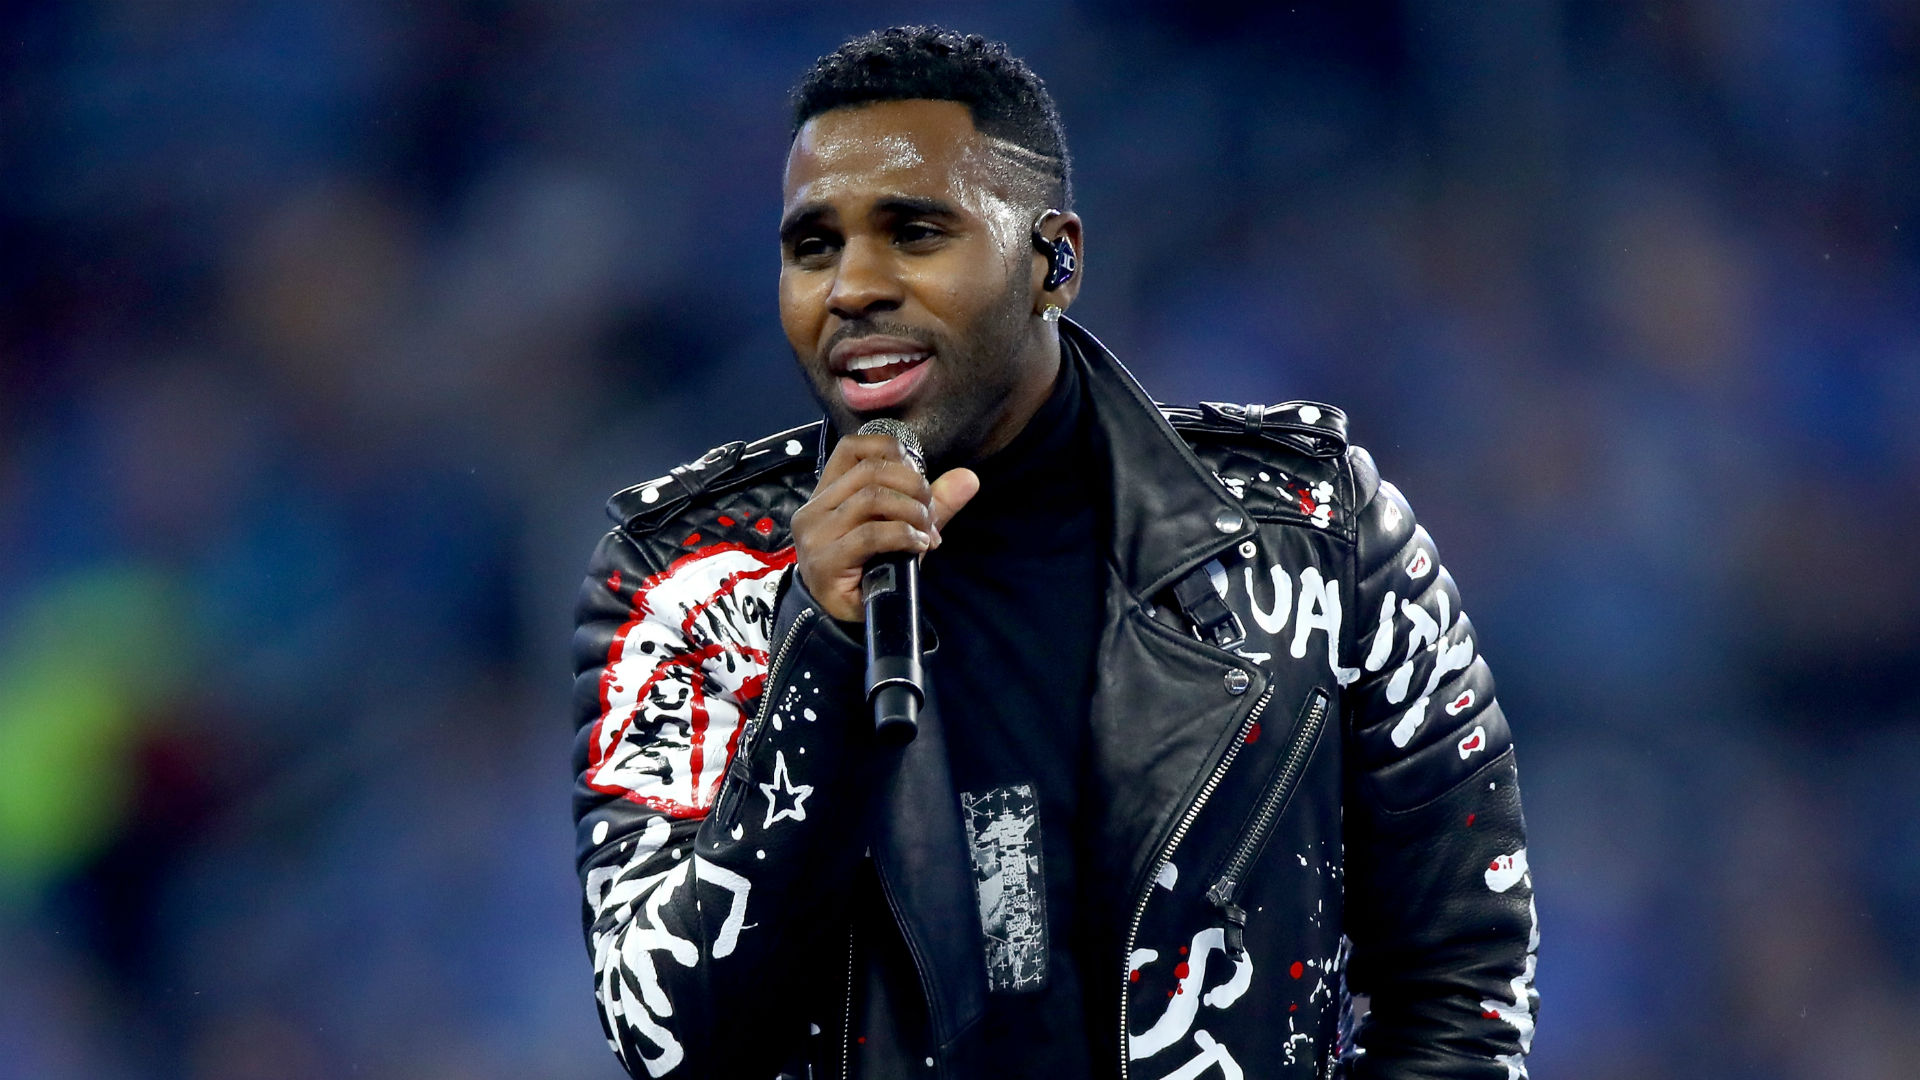 Jason Derulo perfomed 'Color' Official songs of FIFA World Cup 2018